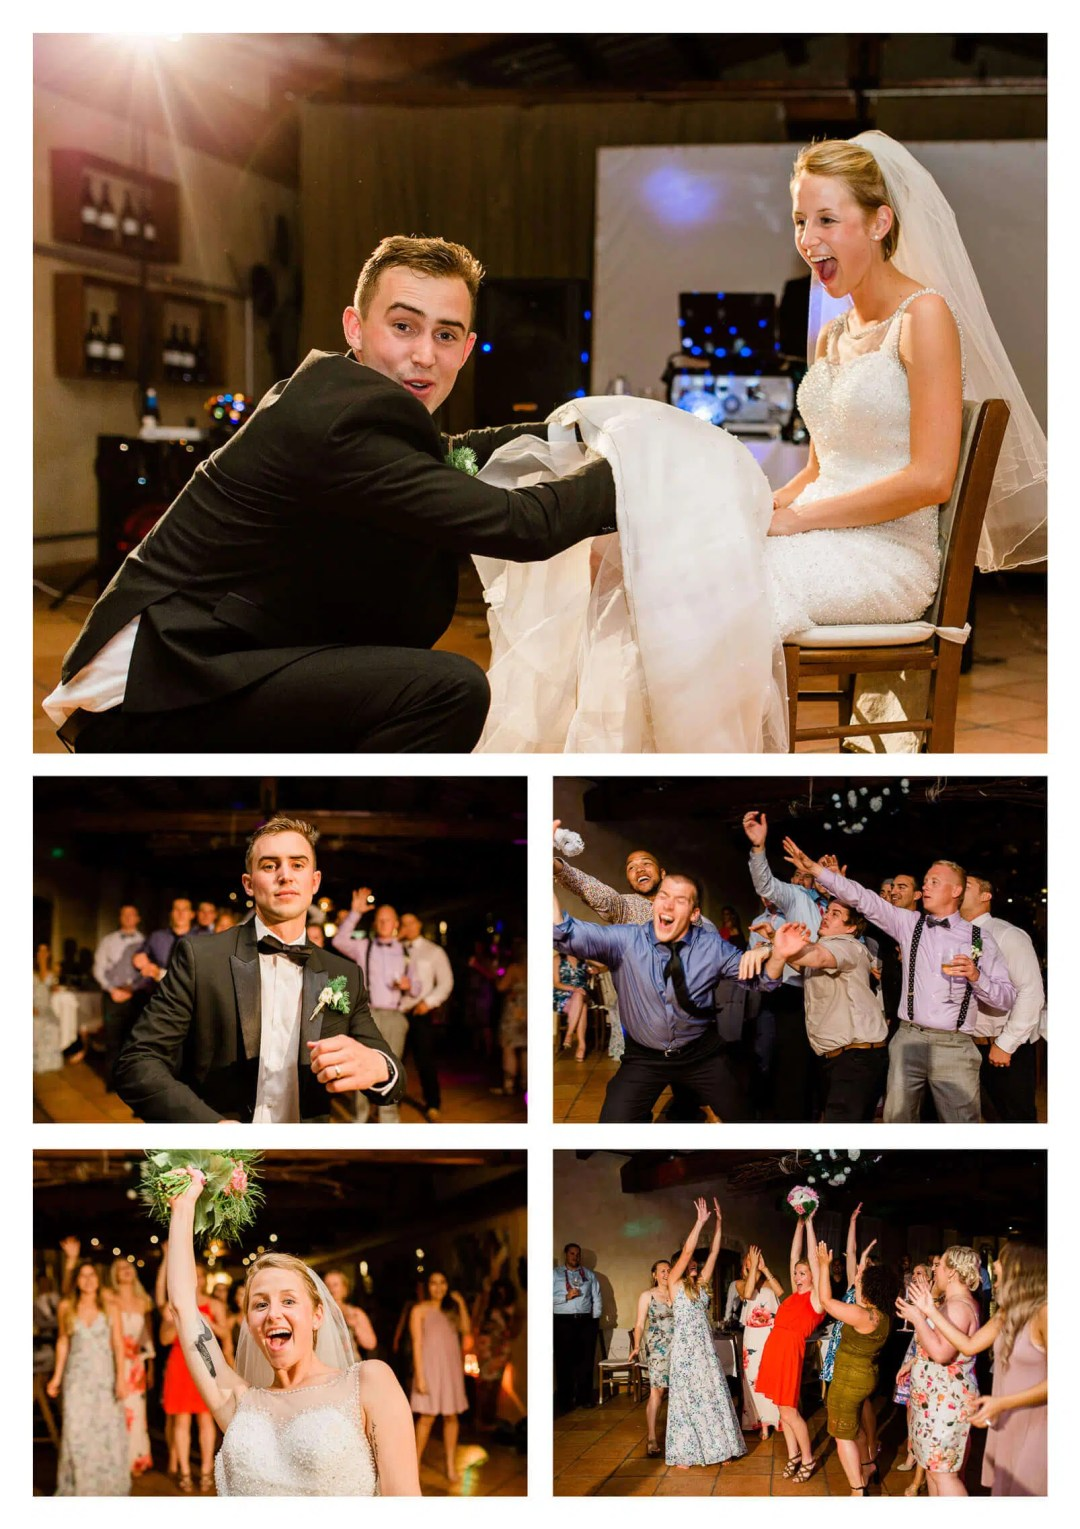 Bouquet and garter toss at Fossa Mala | Pordenone wedding photographer